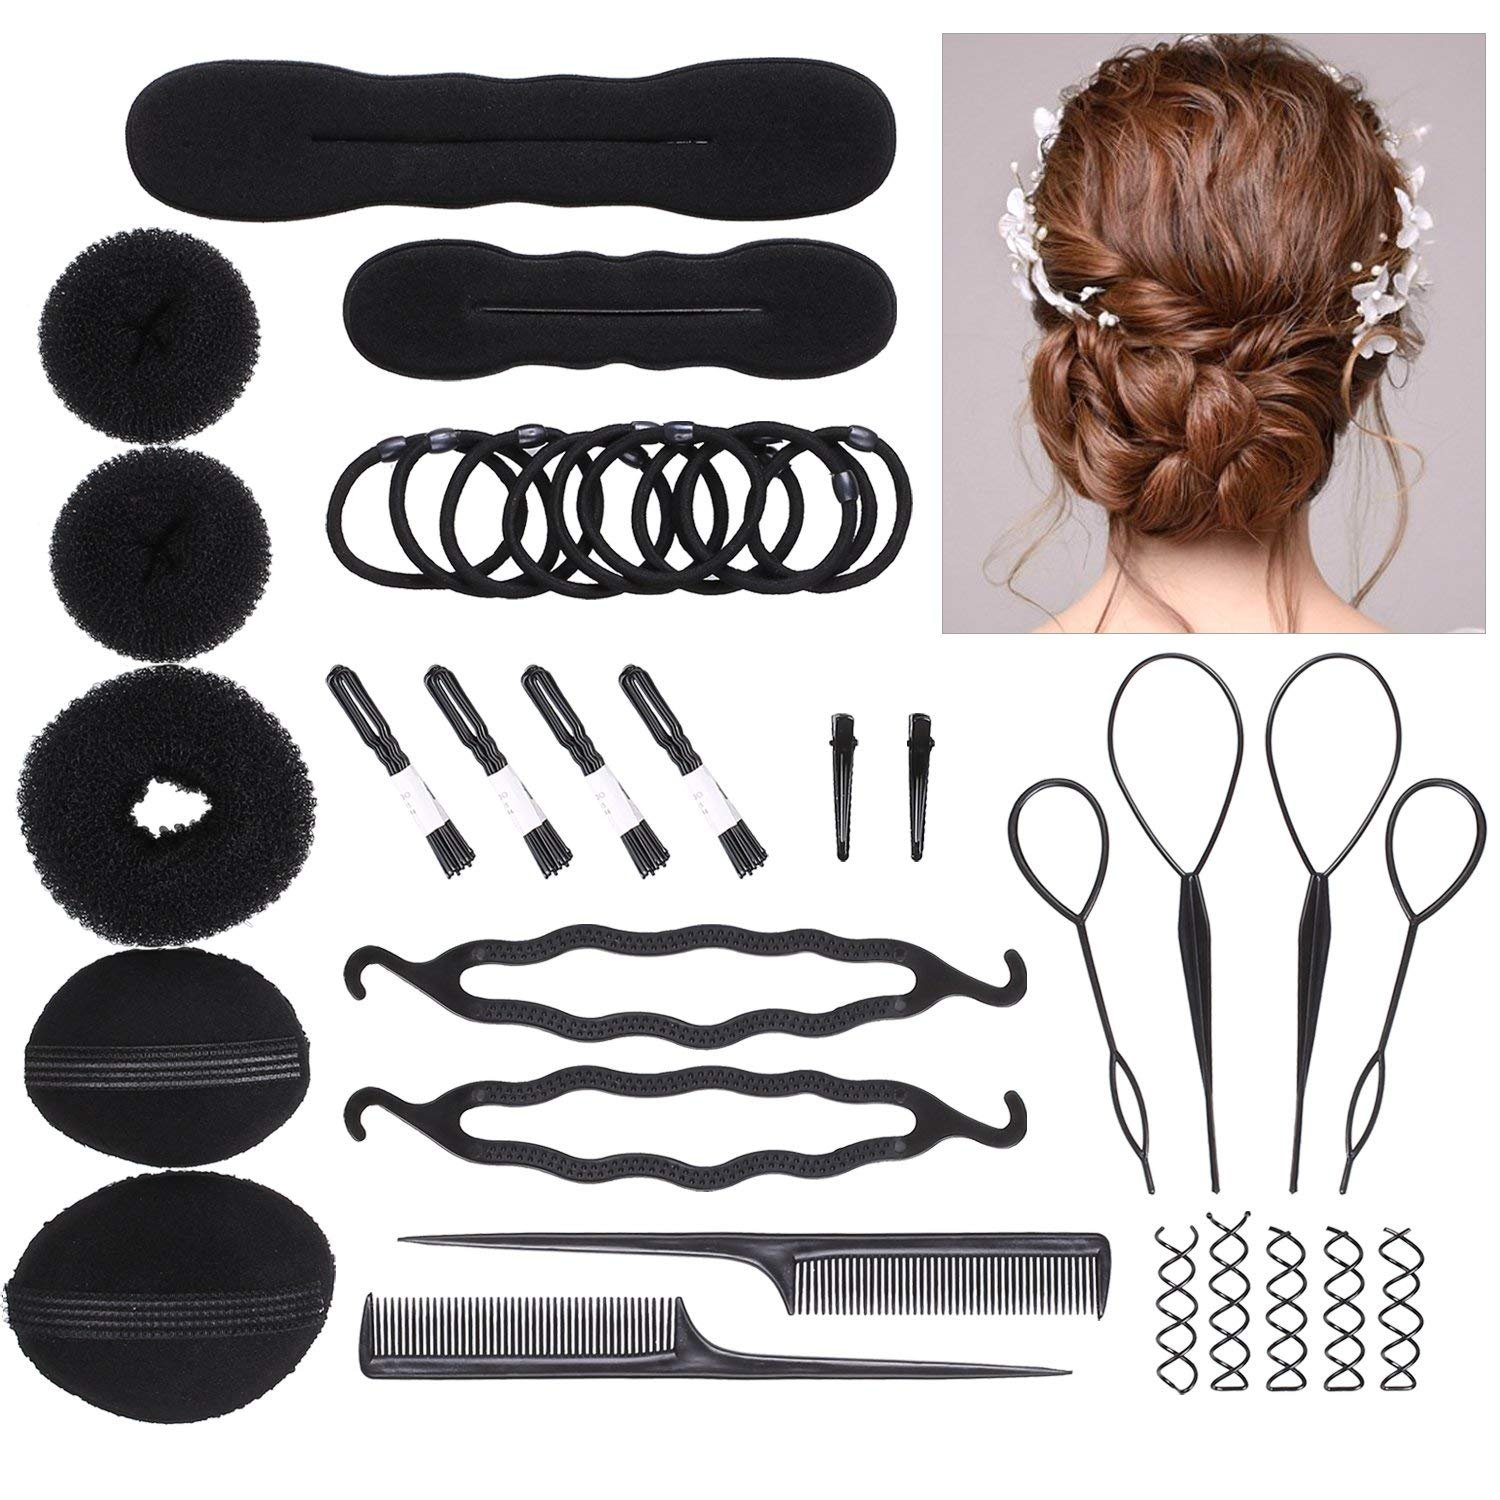 DELOVE- Hair Styling Accessories DIY Tools Set Hair Twist Styling Clip Stick Bun Maker Braid Tool